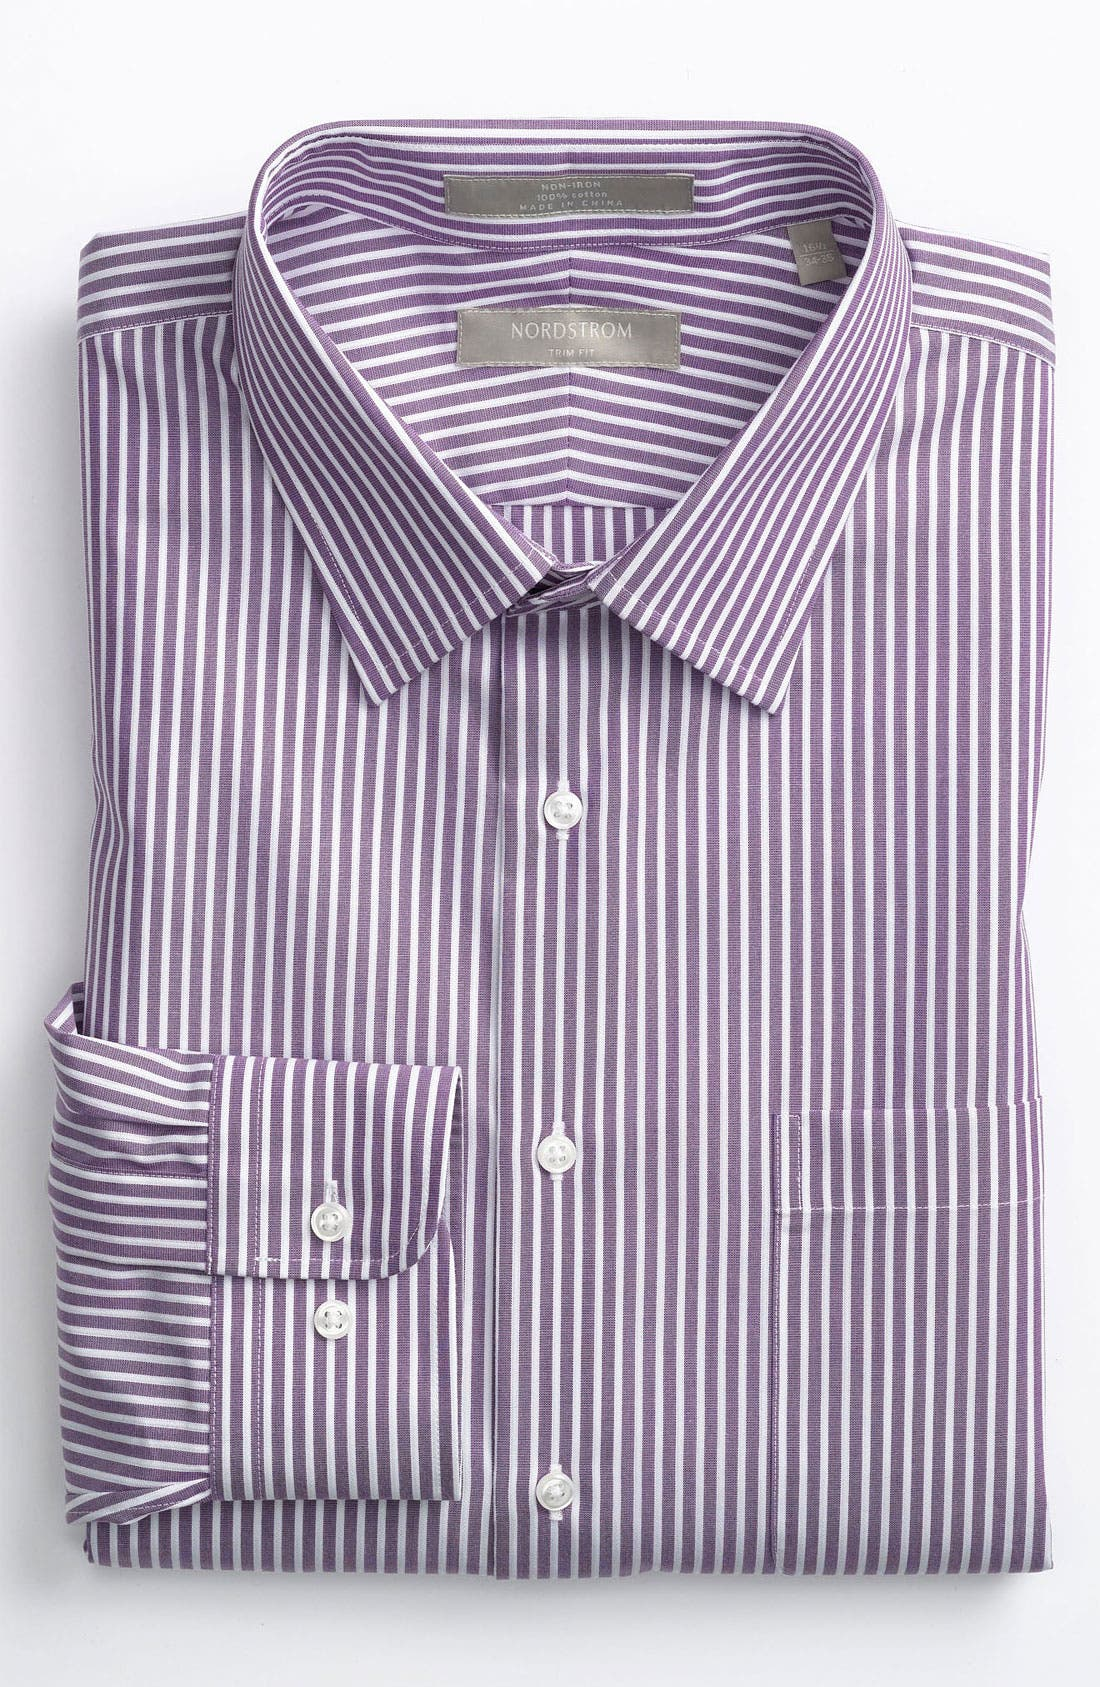 Alternate Image 1 Selected - Nordstrom Trim Fit Non-Iron Dress Shirt (Online Only)